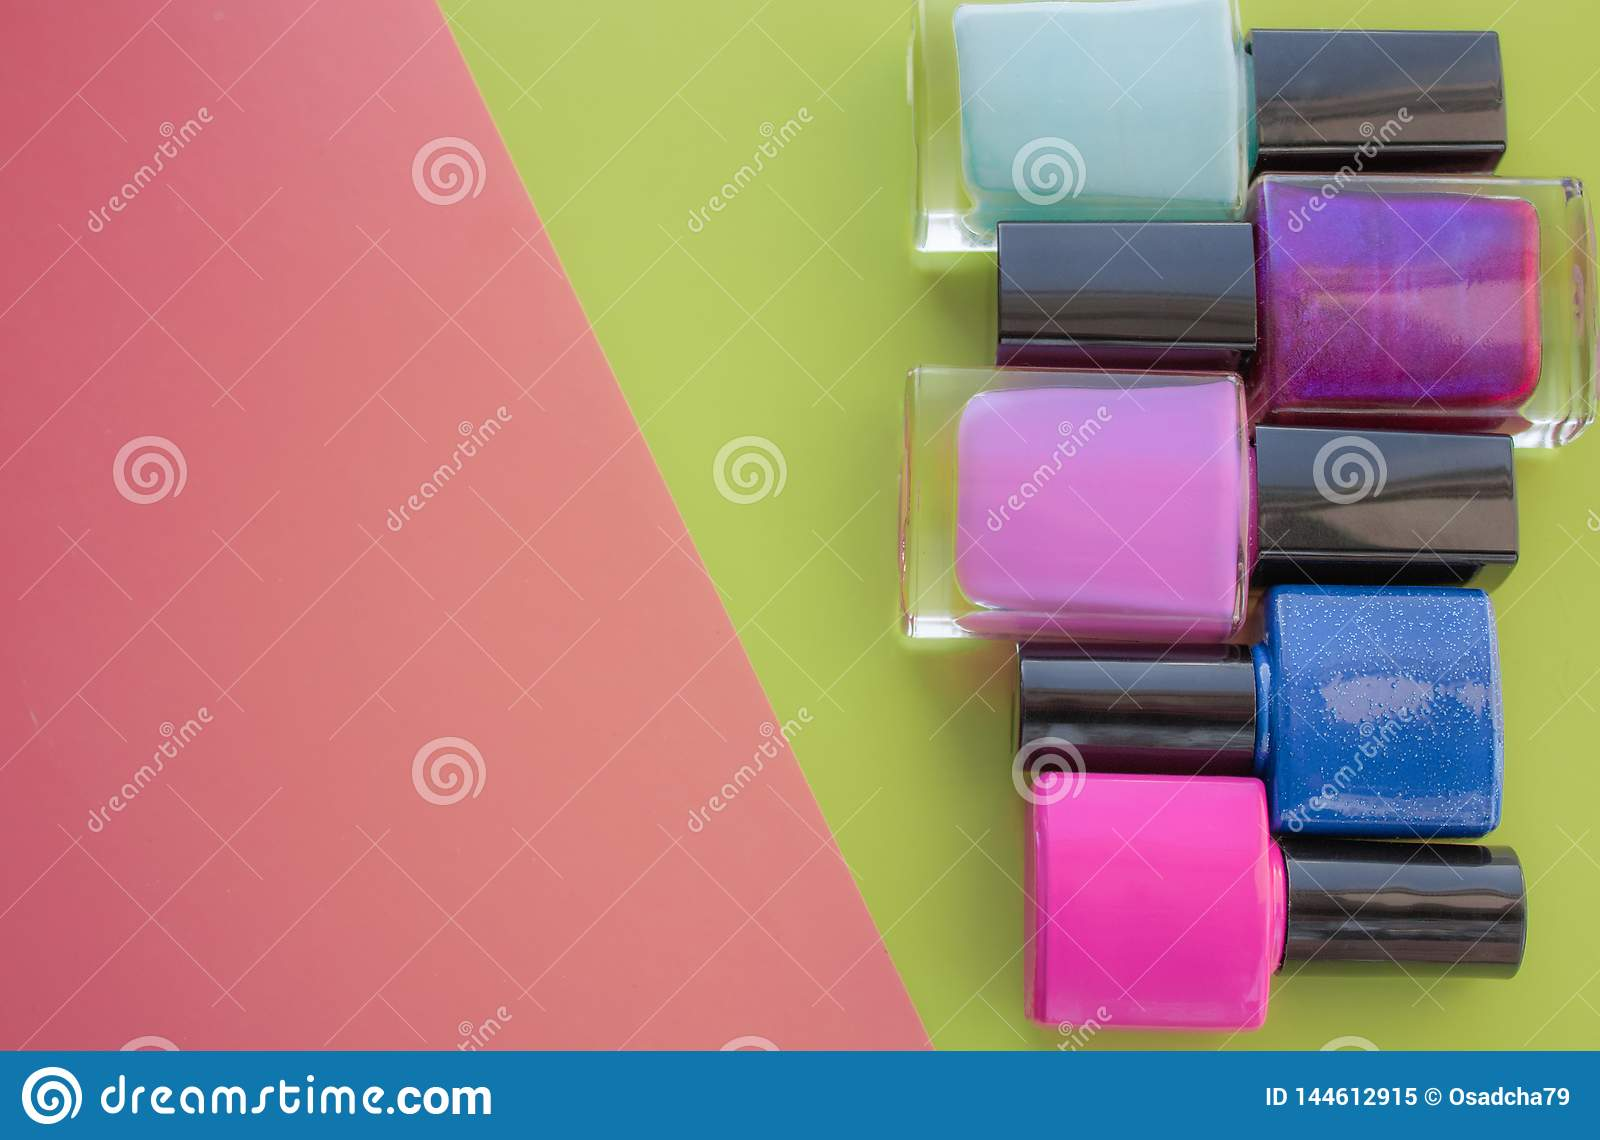 Bottles of nail polish. A group of bright manicures on a pink, green background. With empty space on the left